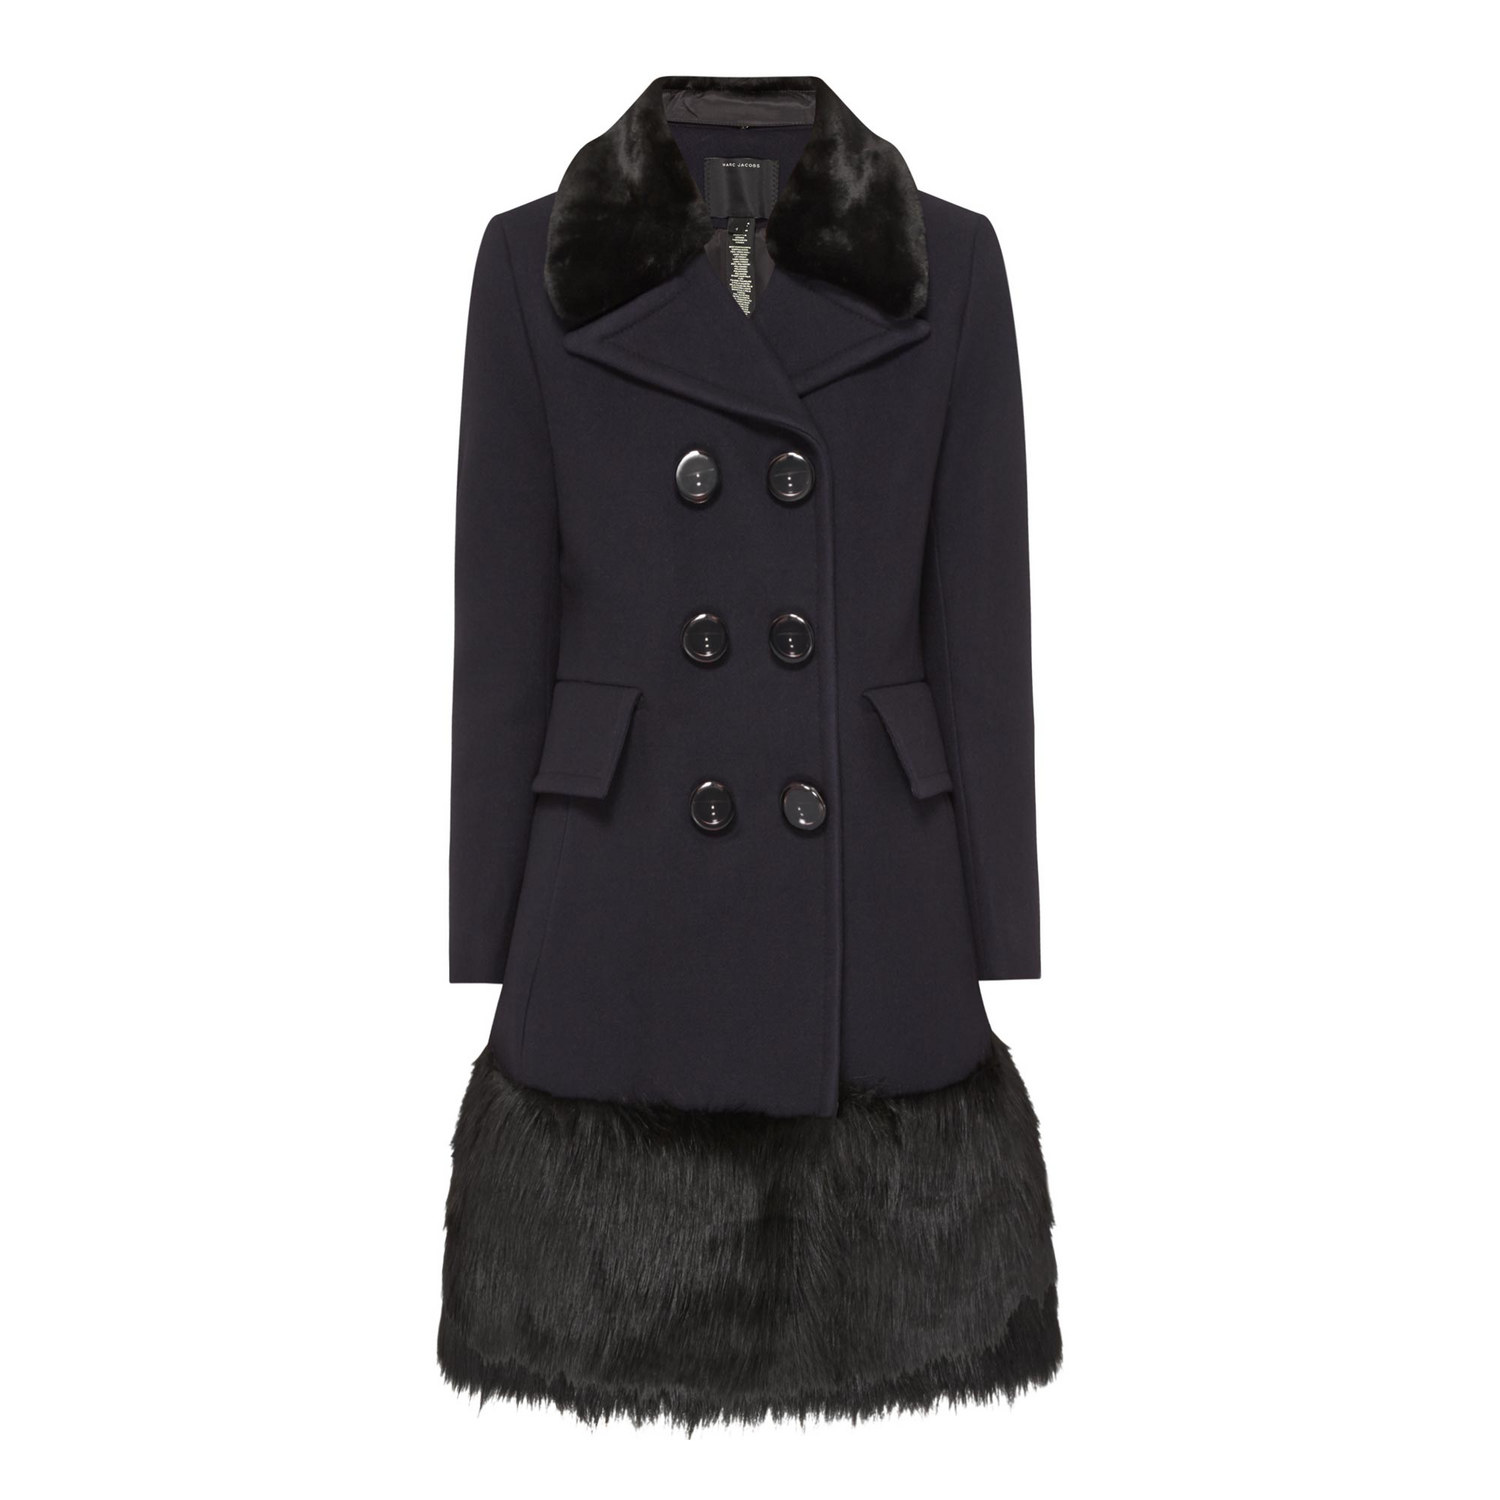 Faux Fur Trim Coat, Marc Jacobs; €1510 Brown Thomas https://goo.gl/JI40RP